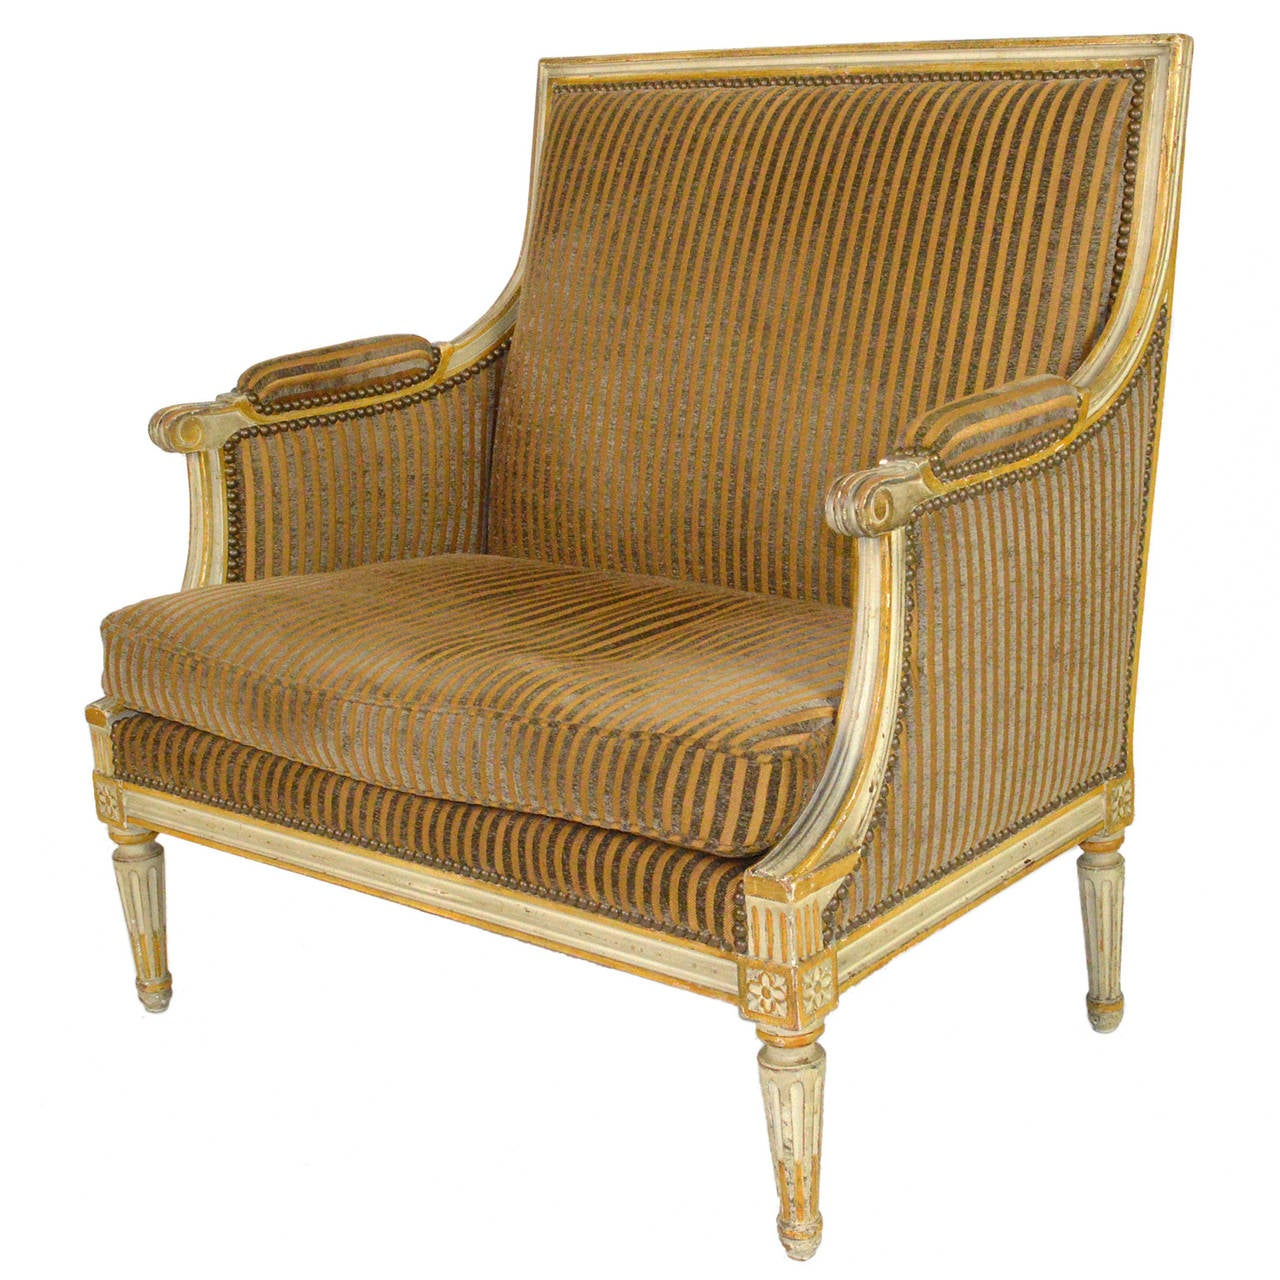 French louis xvi style oversized armchair for sale at 1stdibs for Oversized armchair